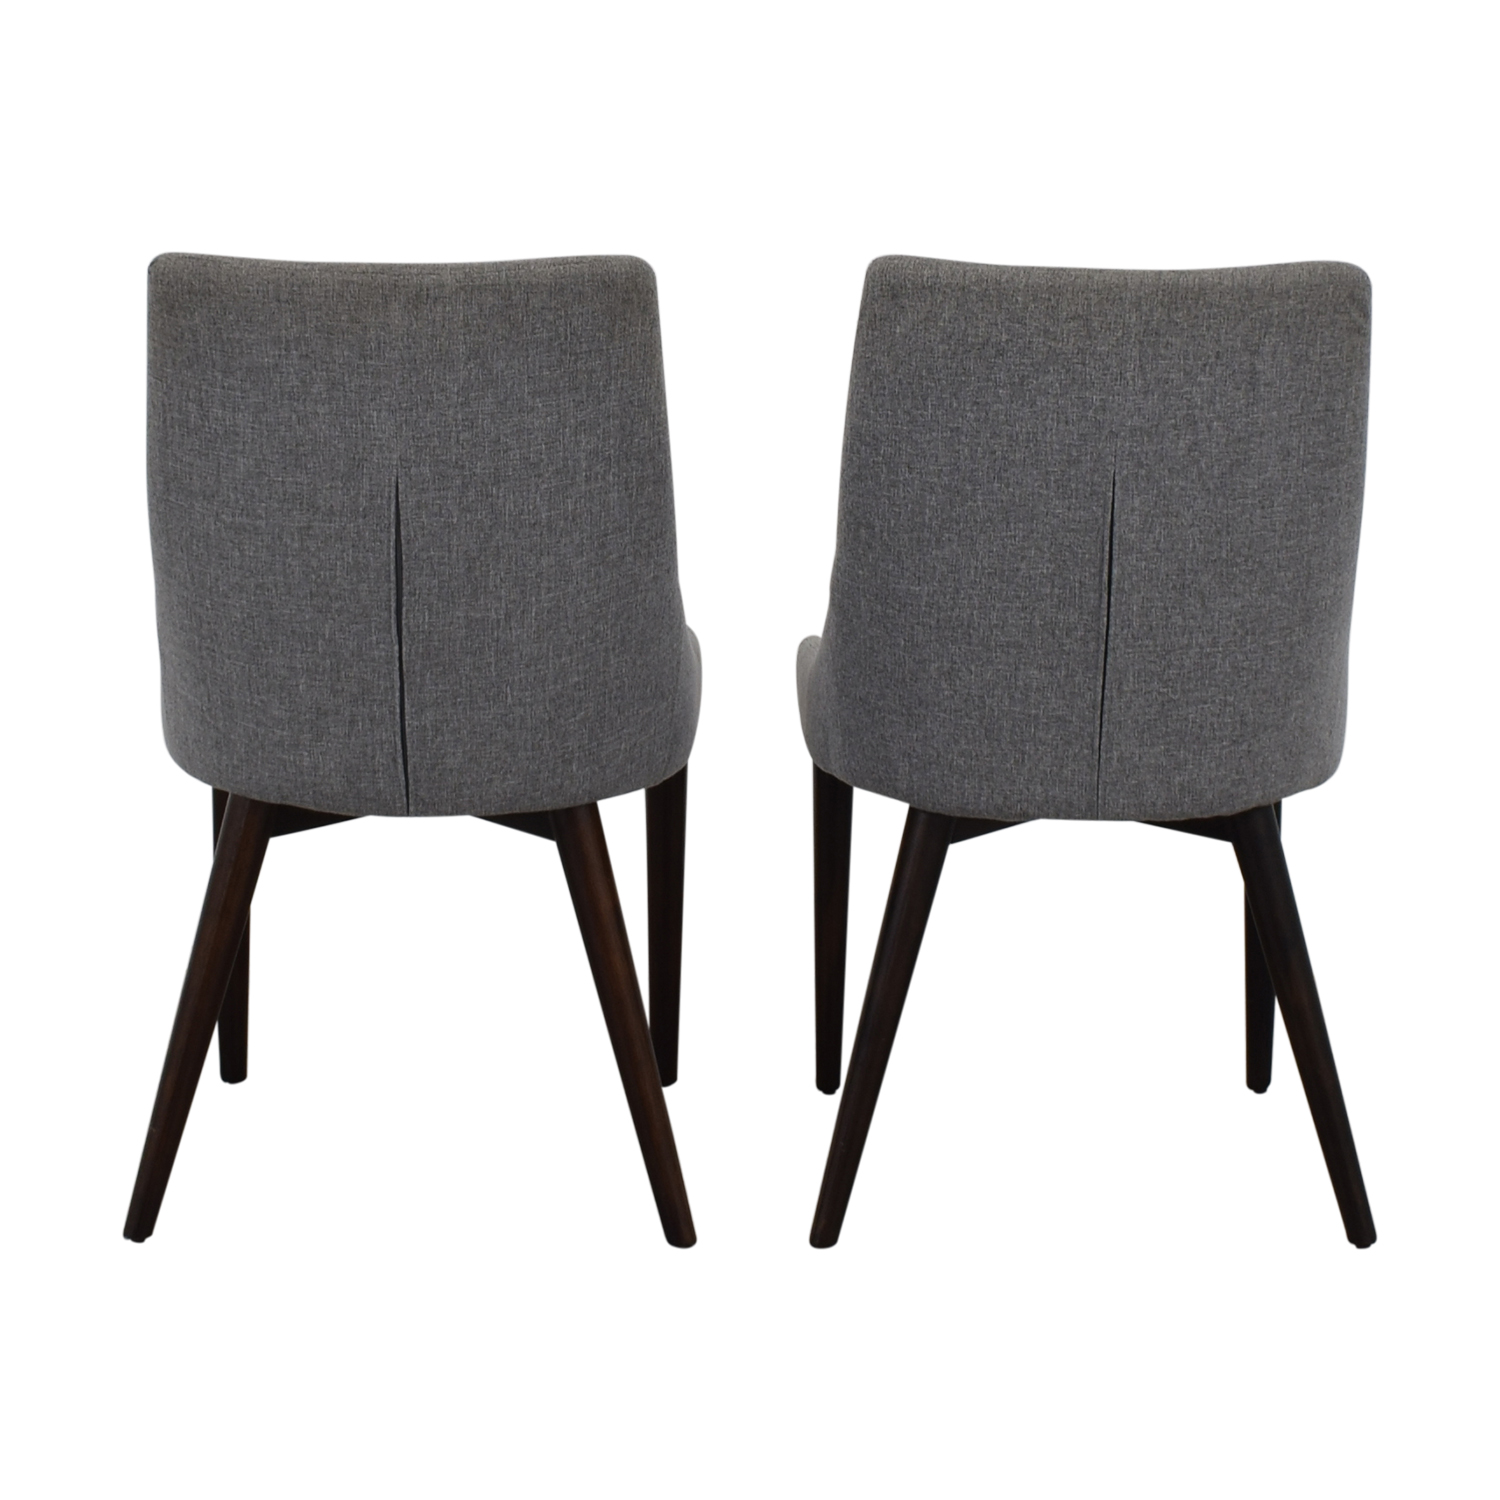 shop iNSPIRE Q Modern iNSPIRE Q Modern Sasha Grey Upholstered Tapered Leg Dining Chairs online